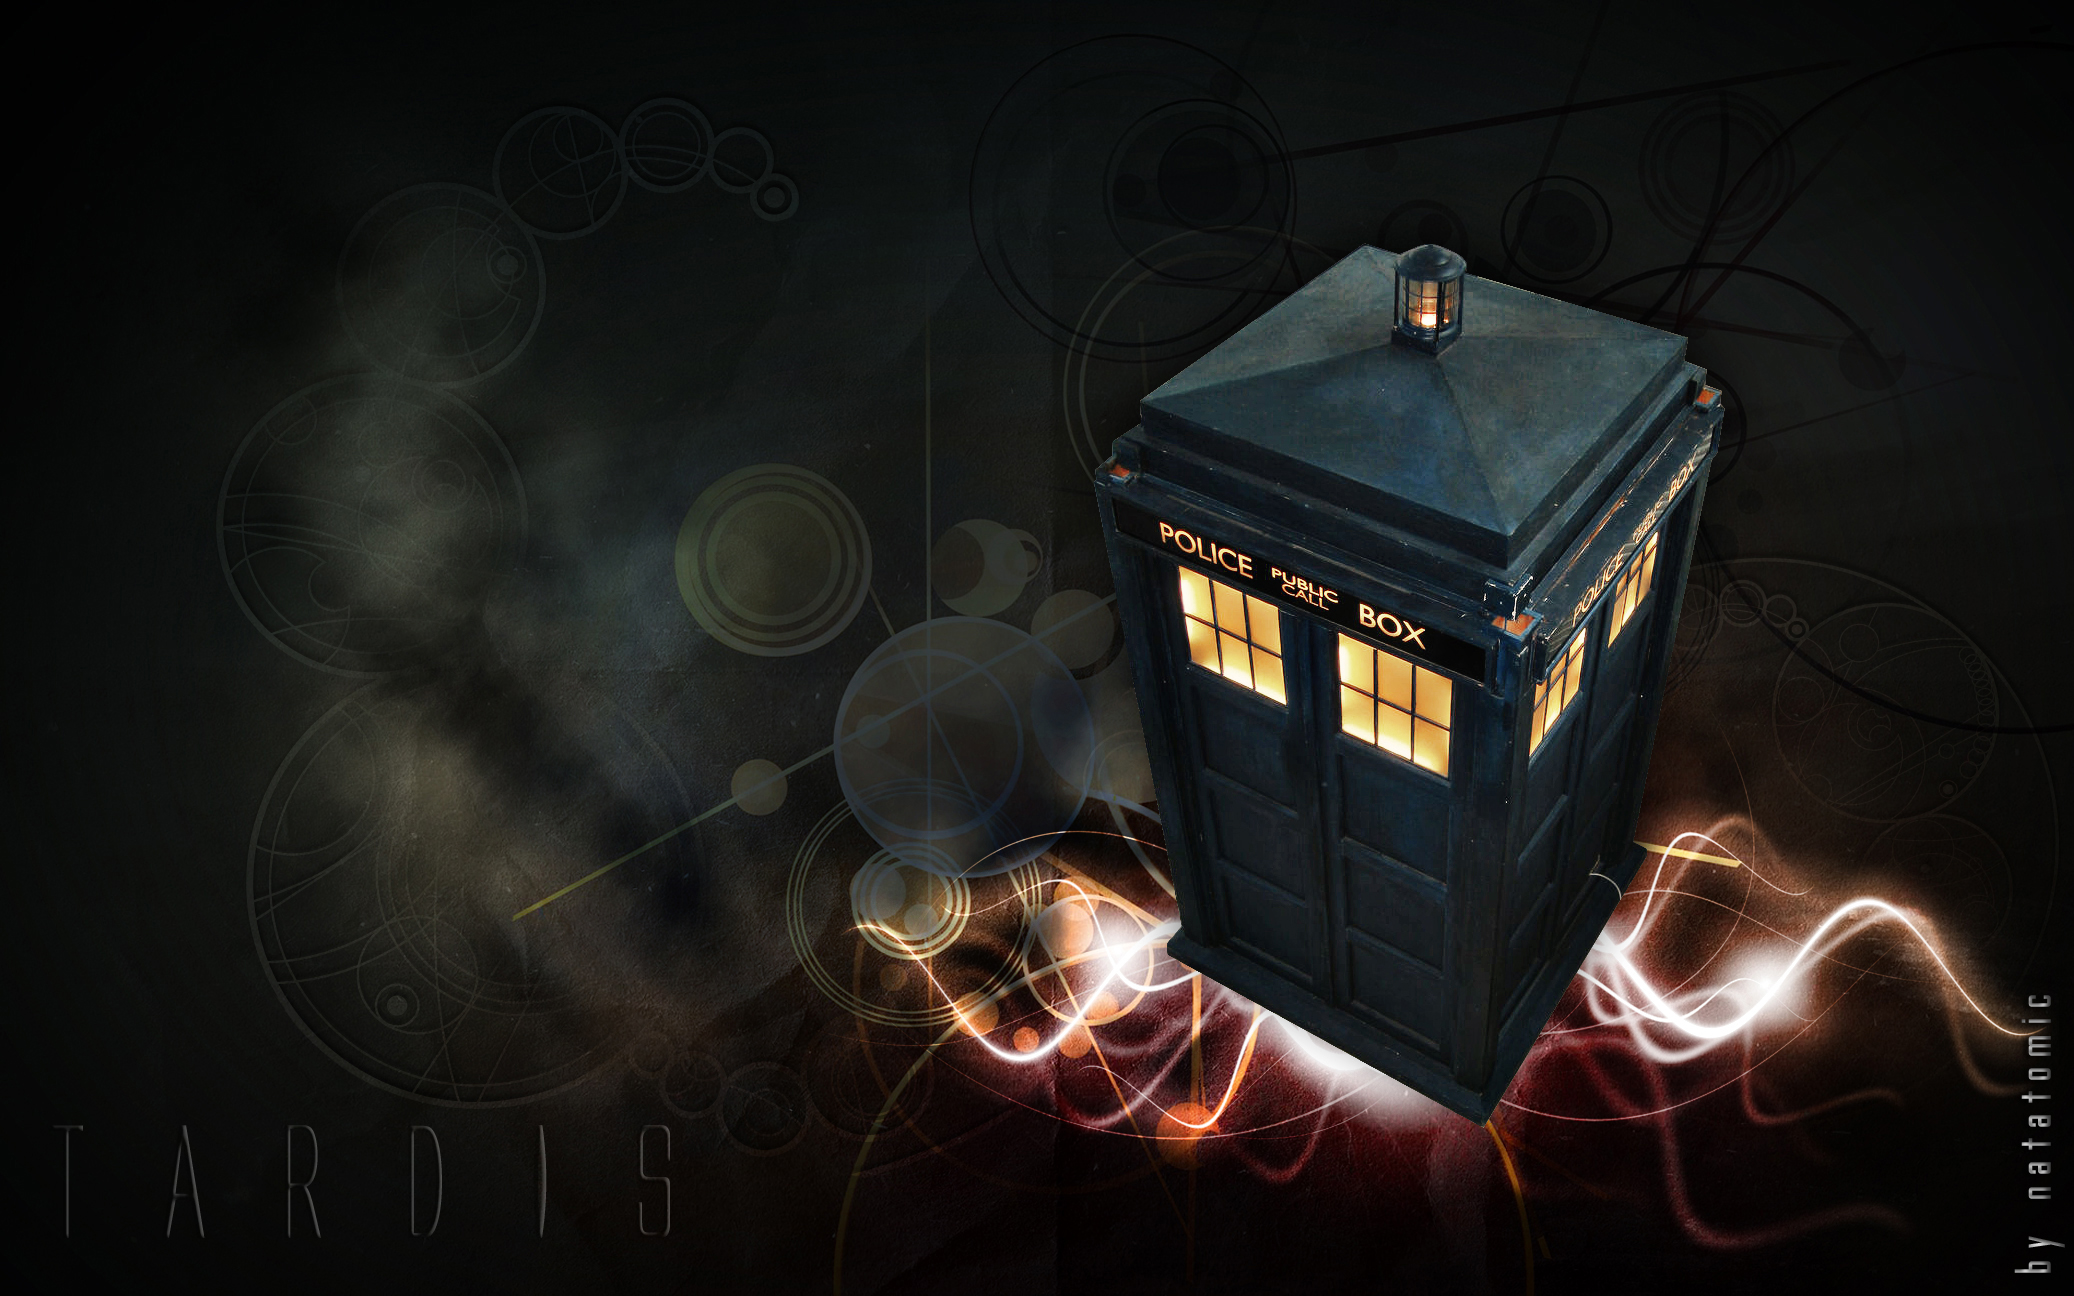 doctor who tardis wallpaper wallpapers55com   Best Wallpapers for 2074x1296